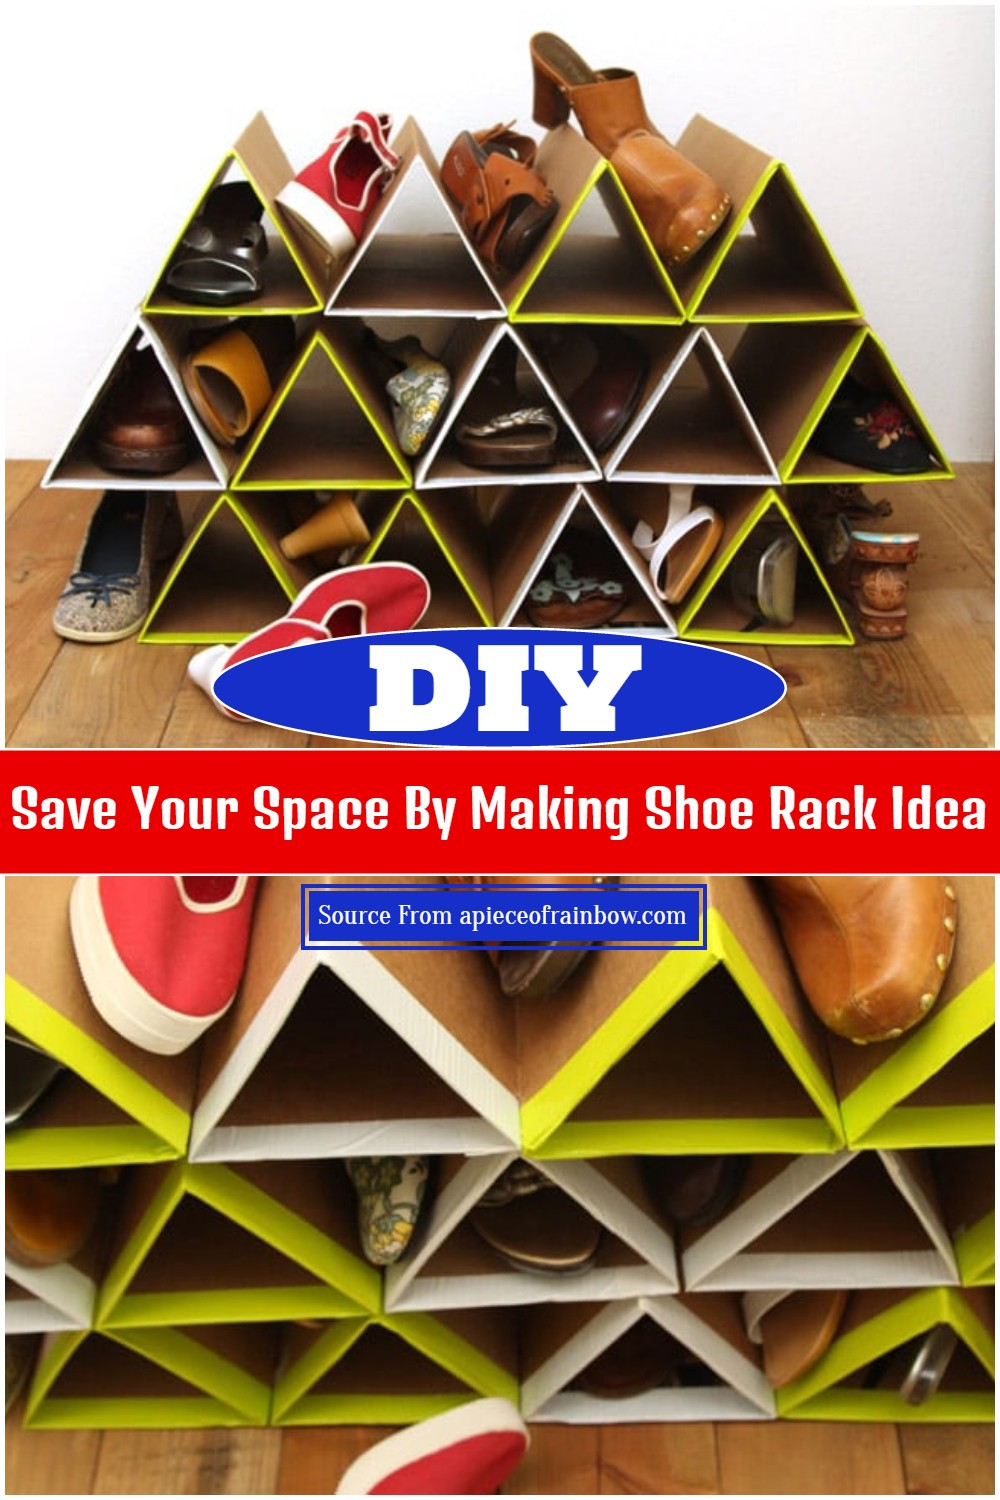 Save Your Space By Making DIY Shoe Rack Idea